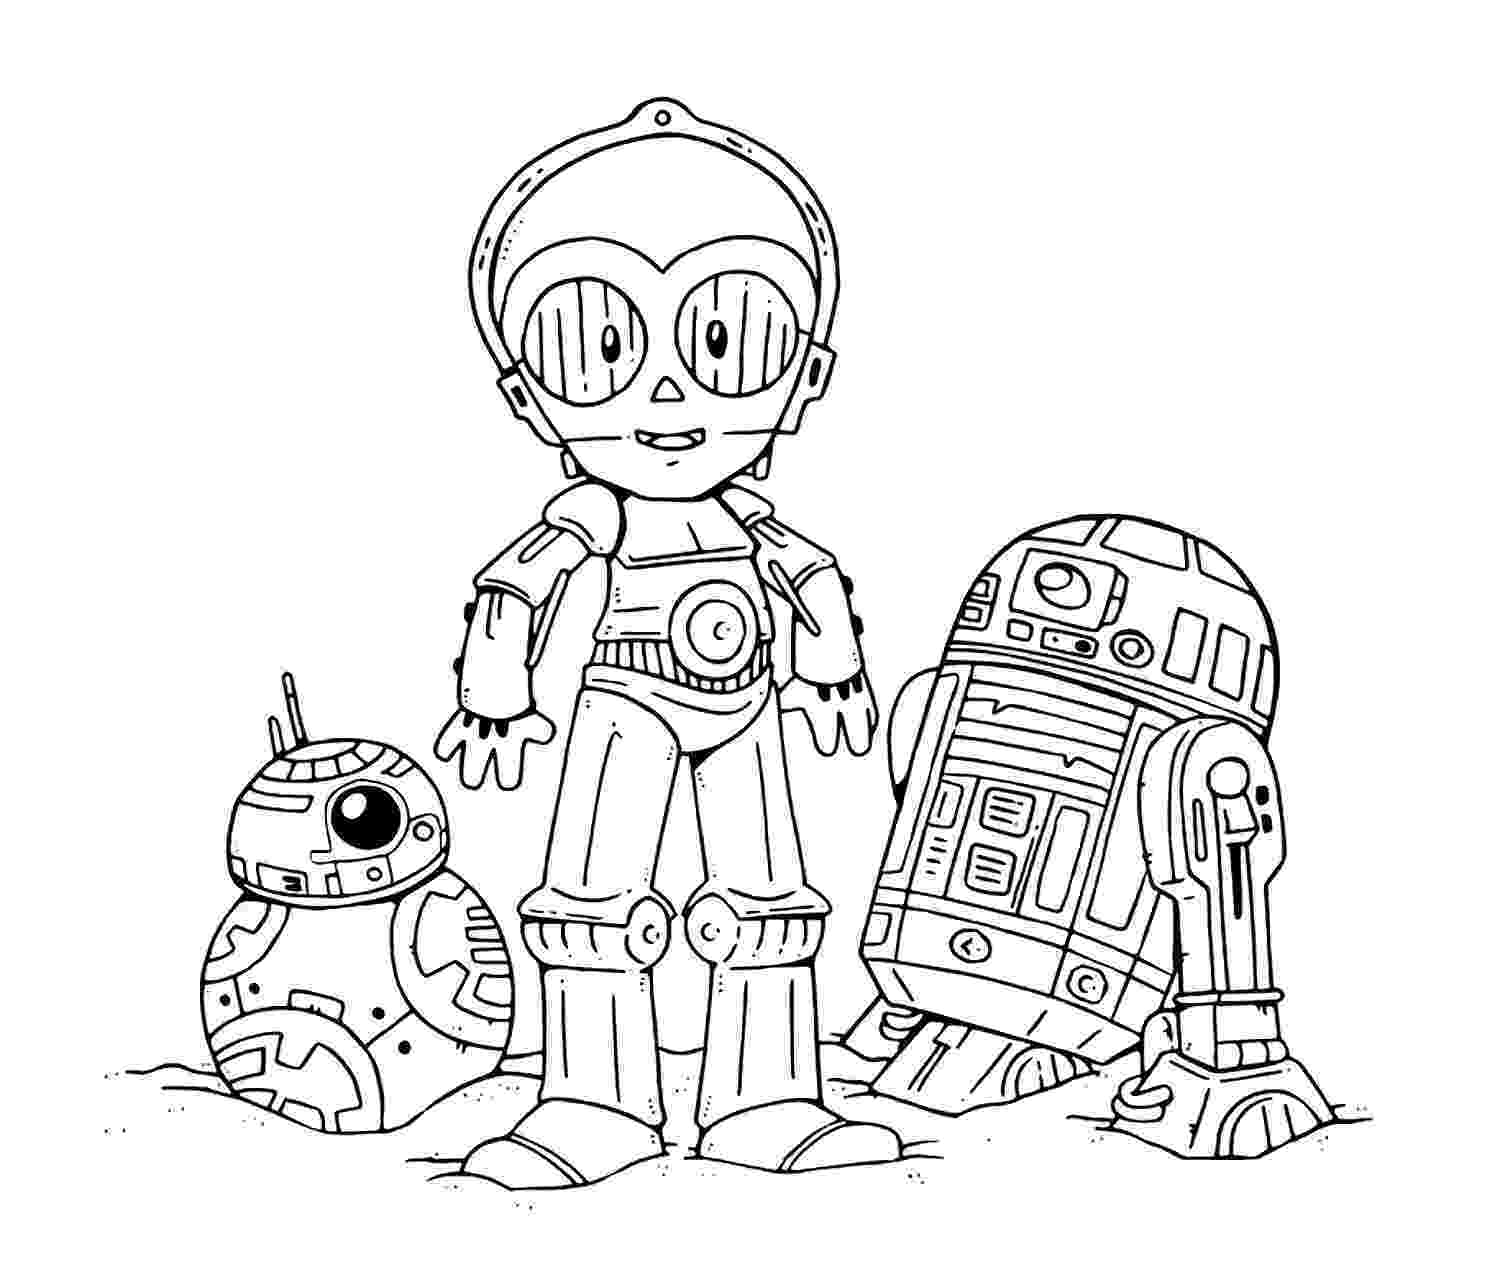 starwars colouring coloring pages star wars free printable coloring pages colouring starwars